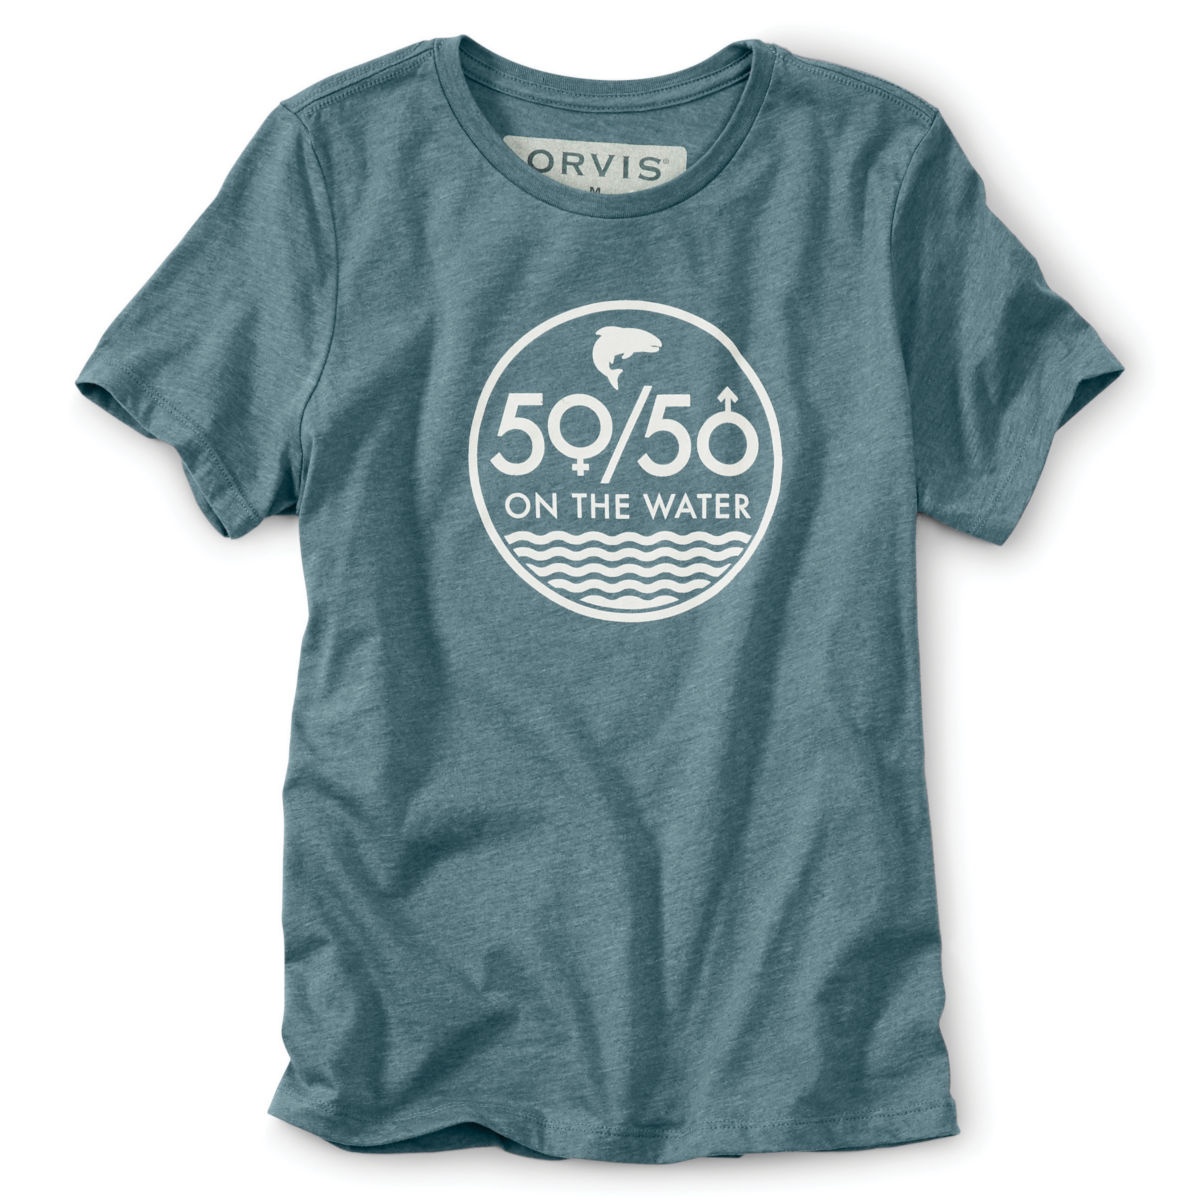 Women's 50/50 Short-Sleeved Tee - image number 0